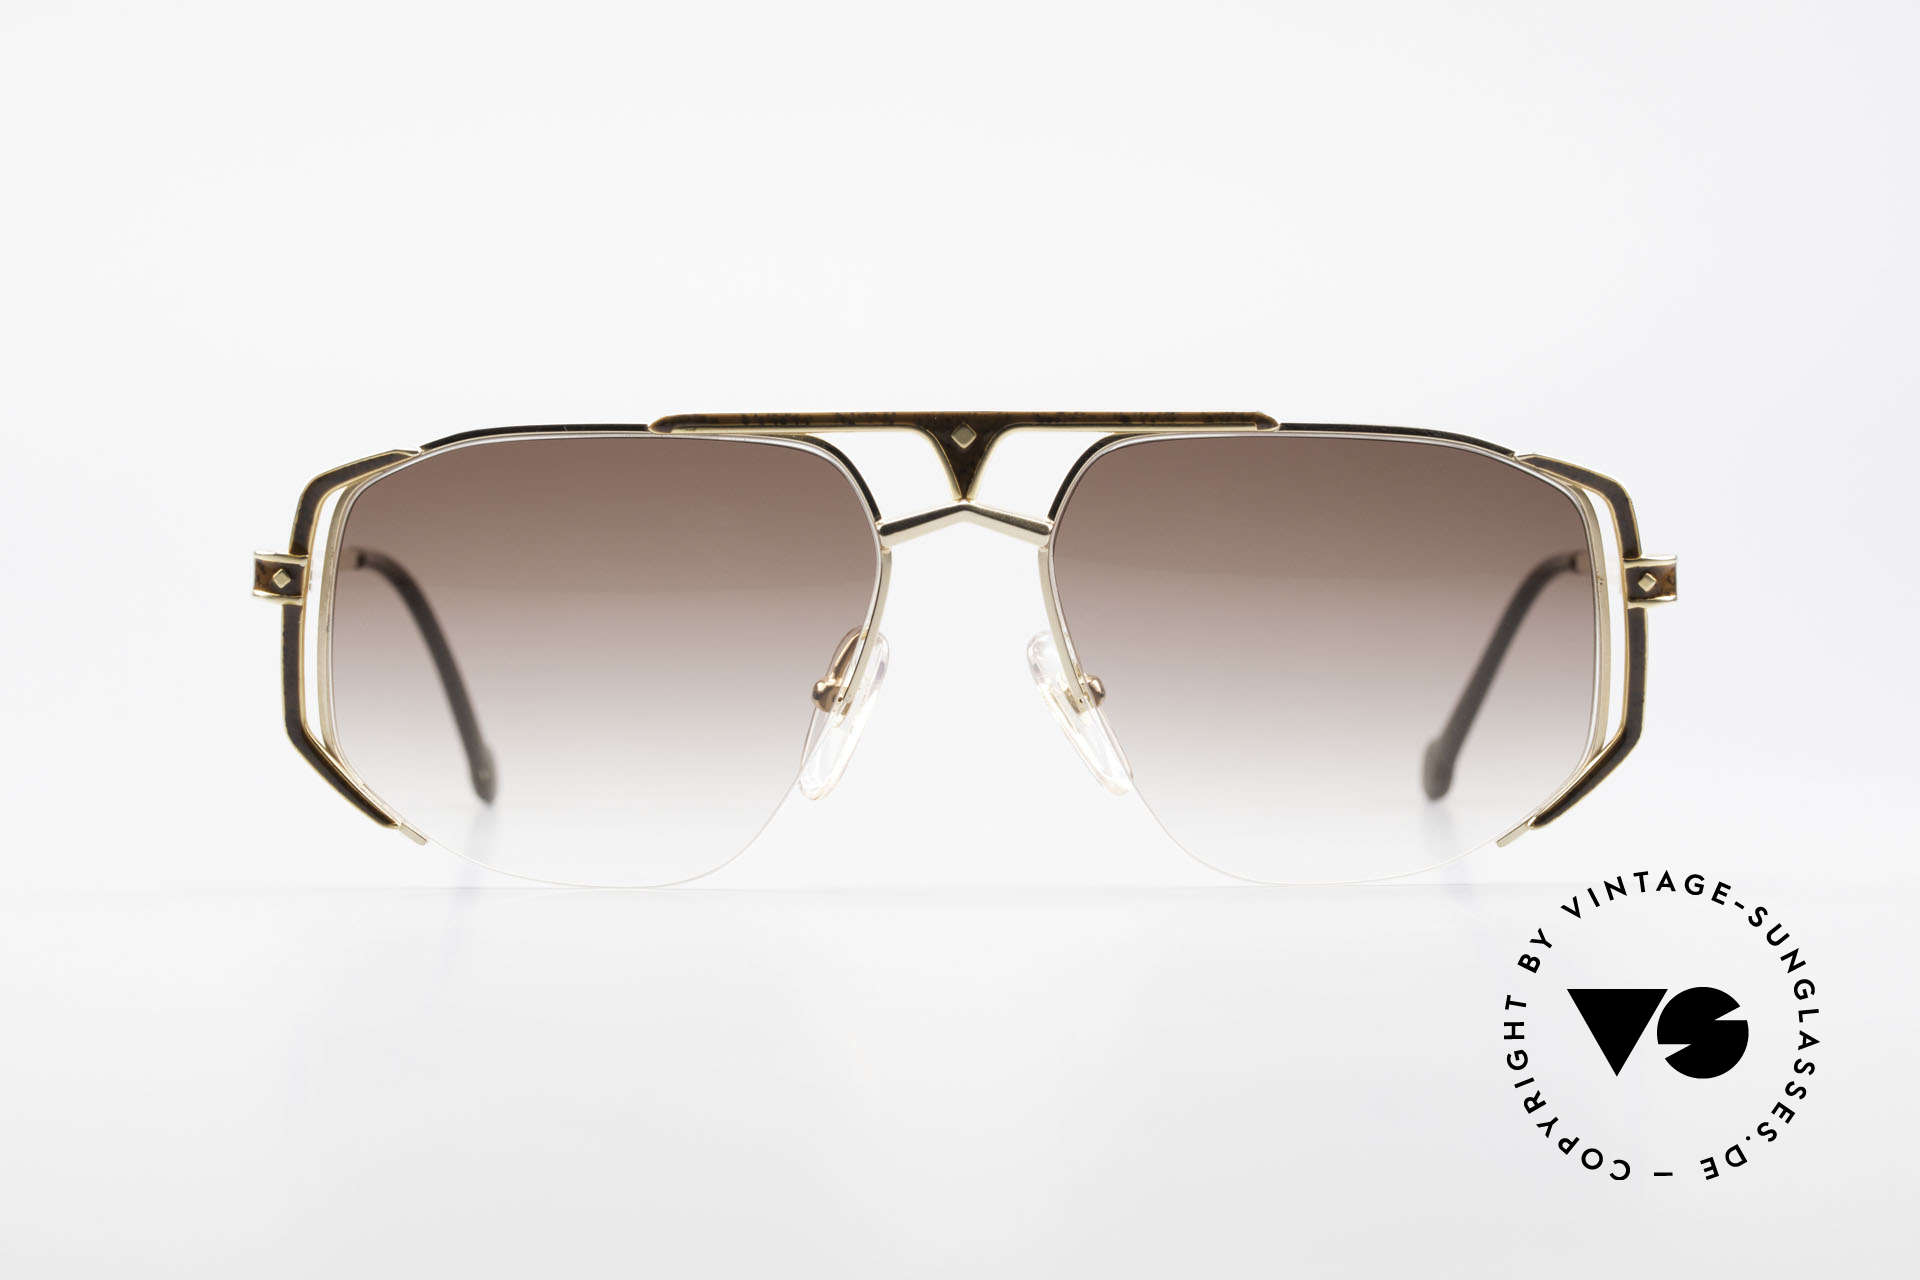 MCM München 5 Titanium Sunglasses Large, precious frame with serial number & case by Versace, Made for Men